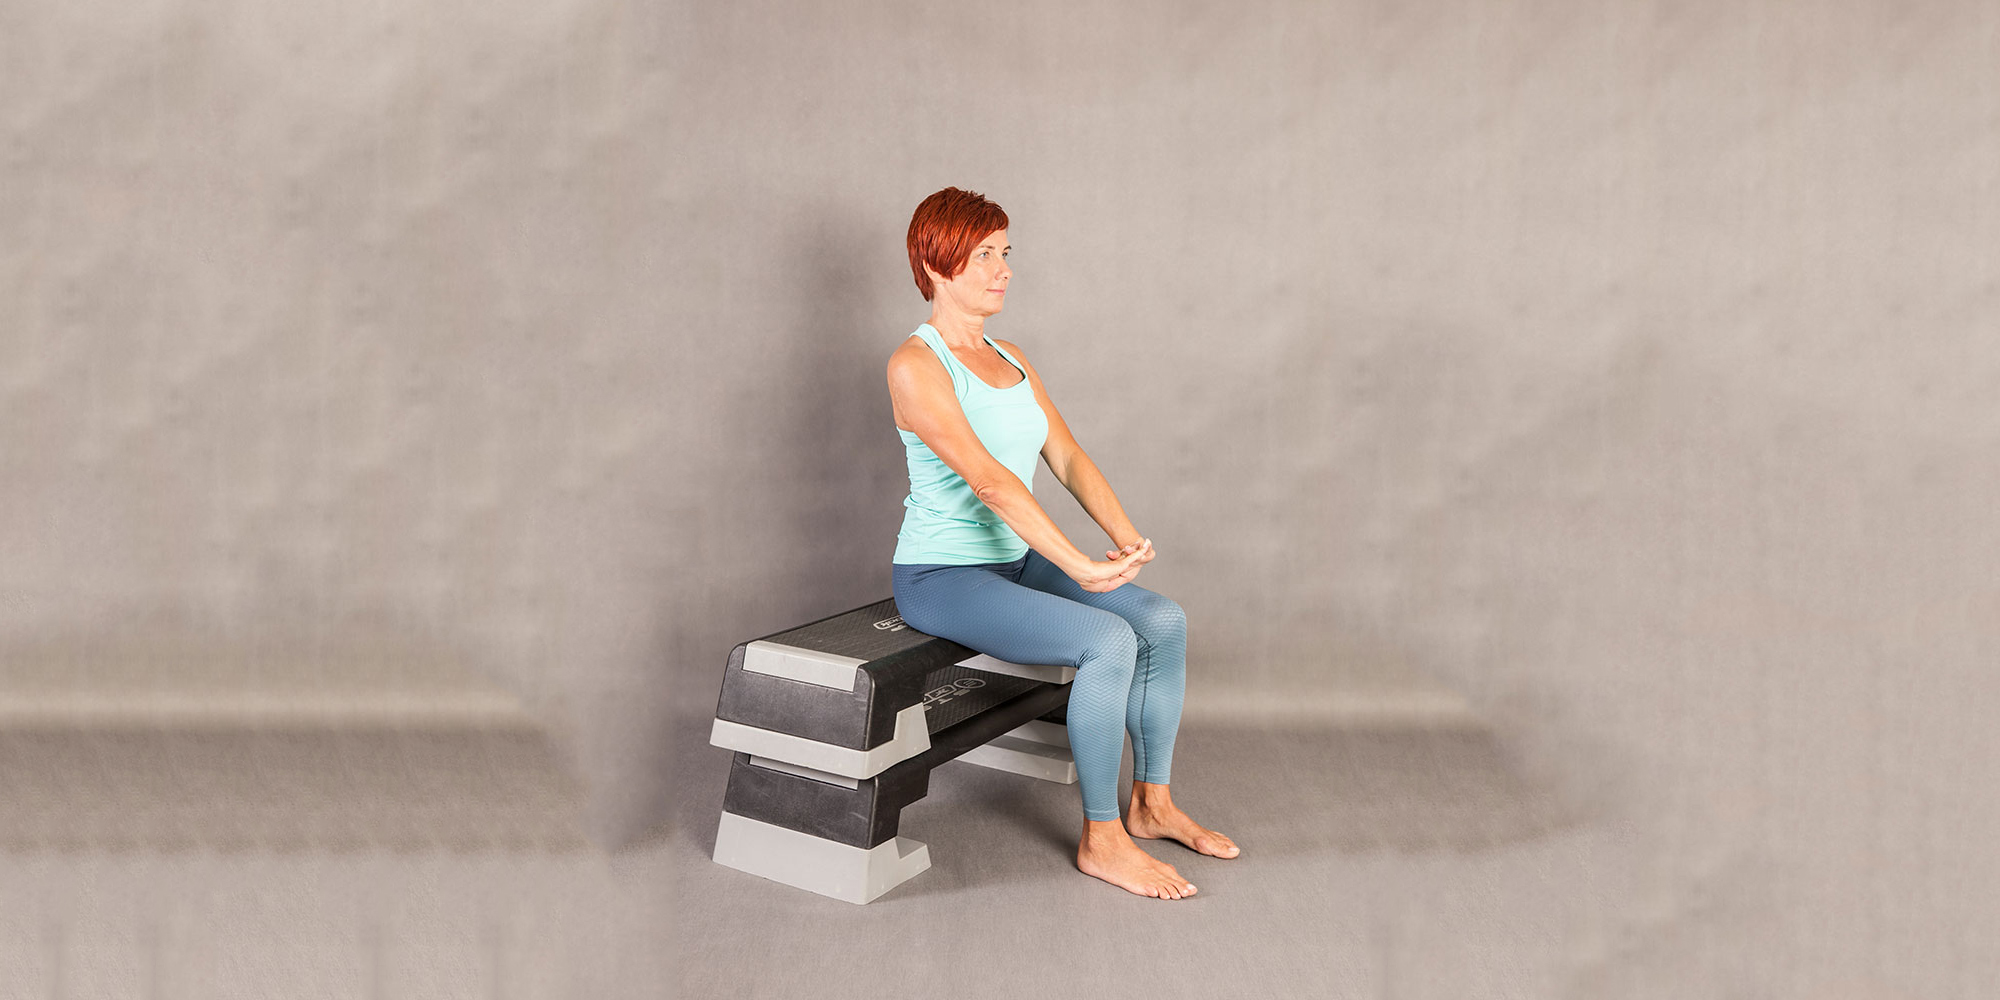 Fit pain free - Sitting Overhead Extension Up and Down